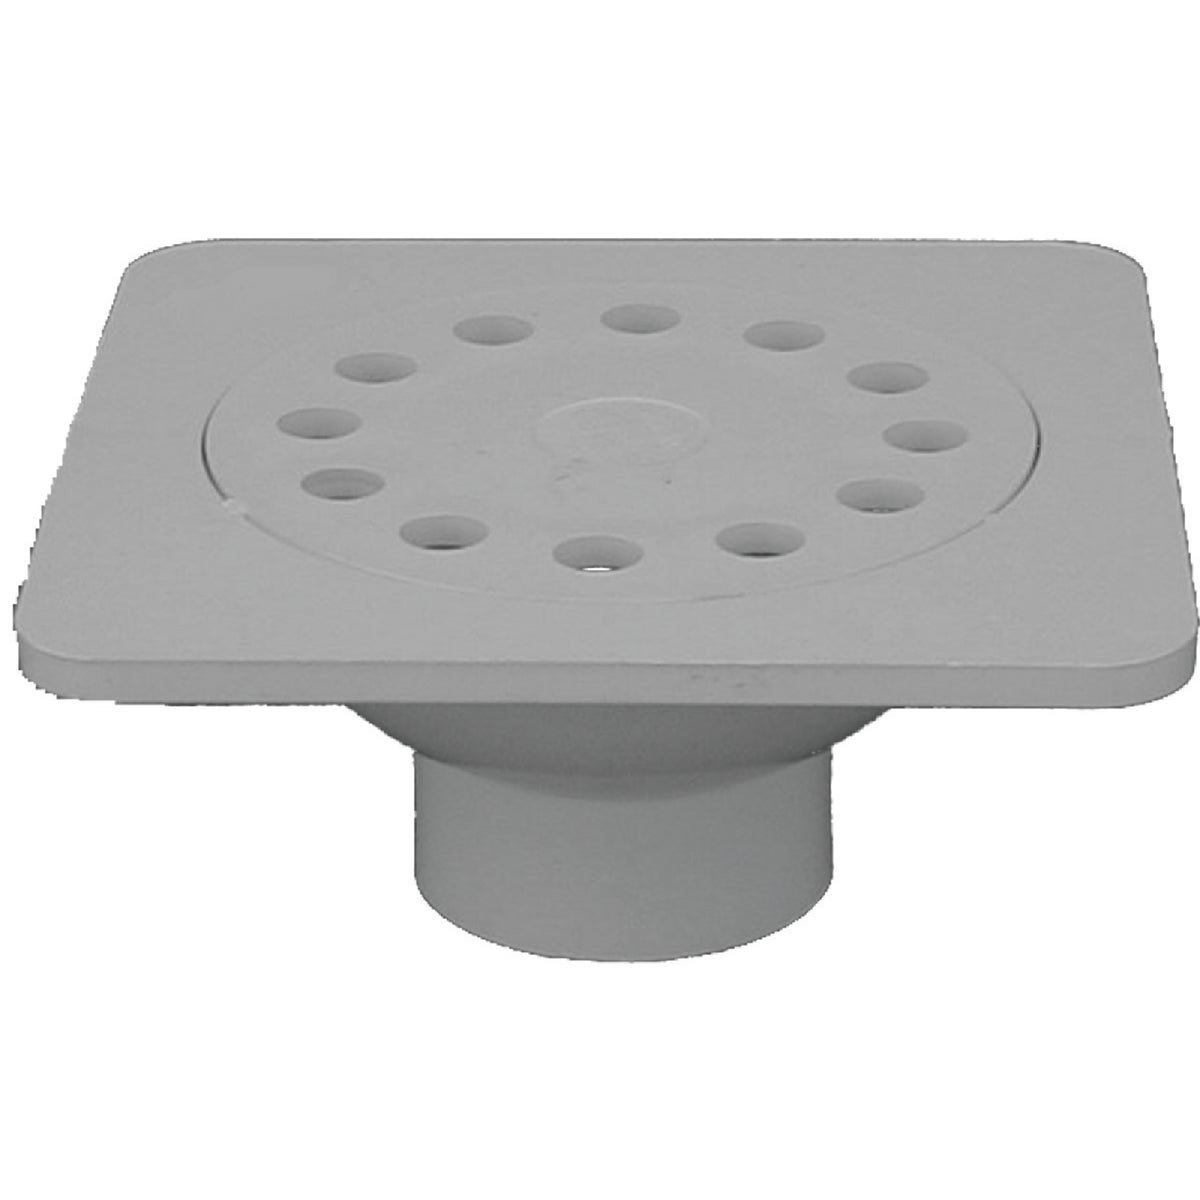 6X6 PVC-DWV BELL TRAP - 78860 by Genova Inc